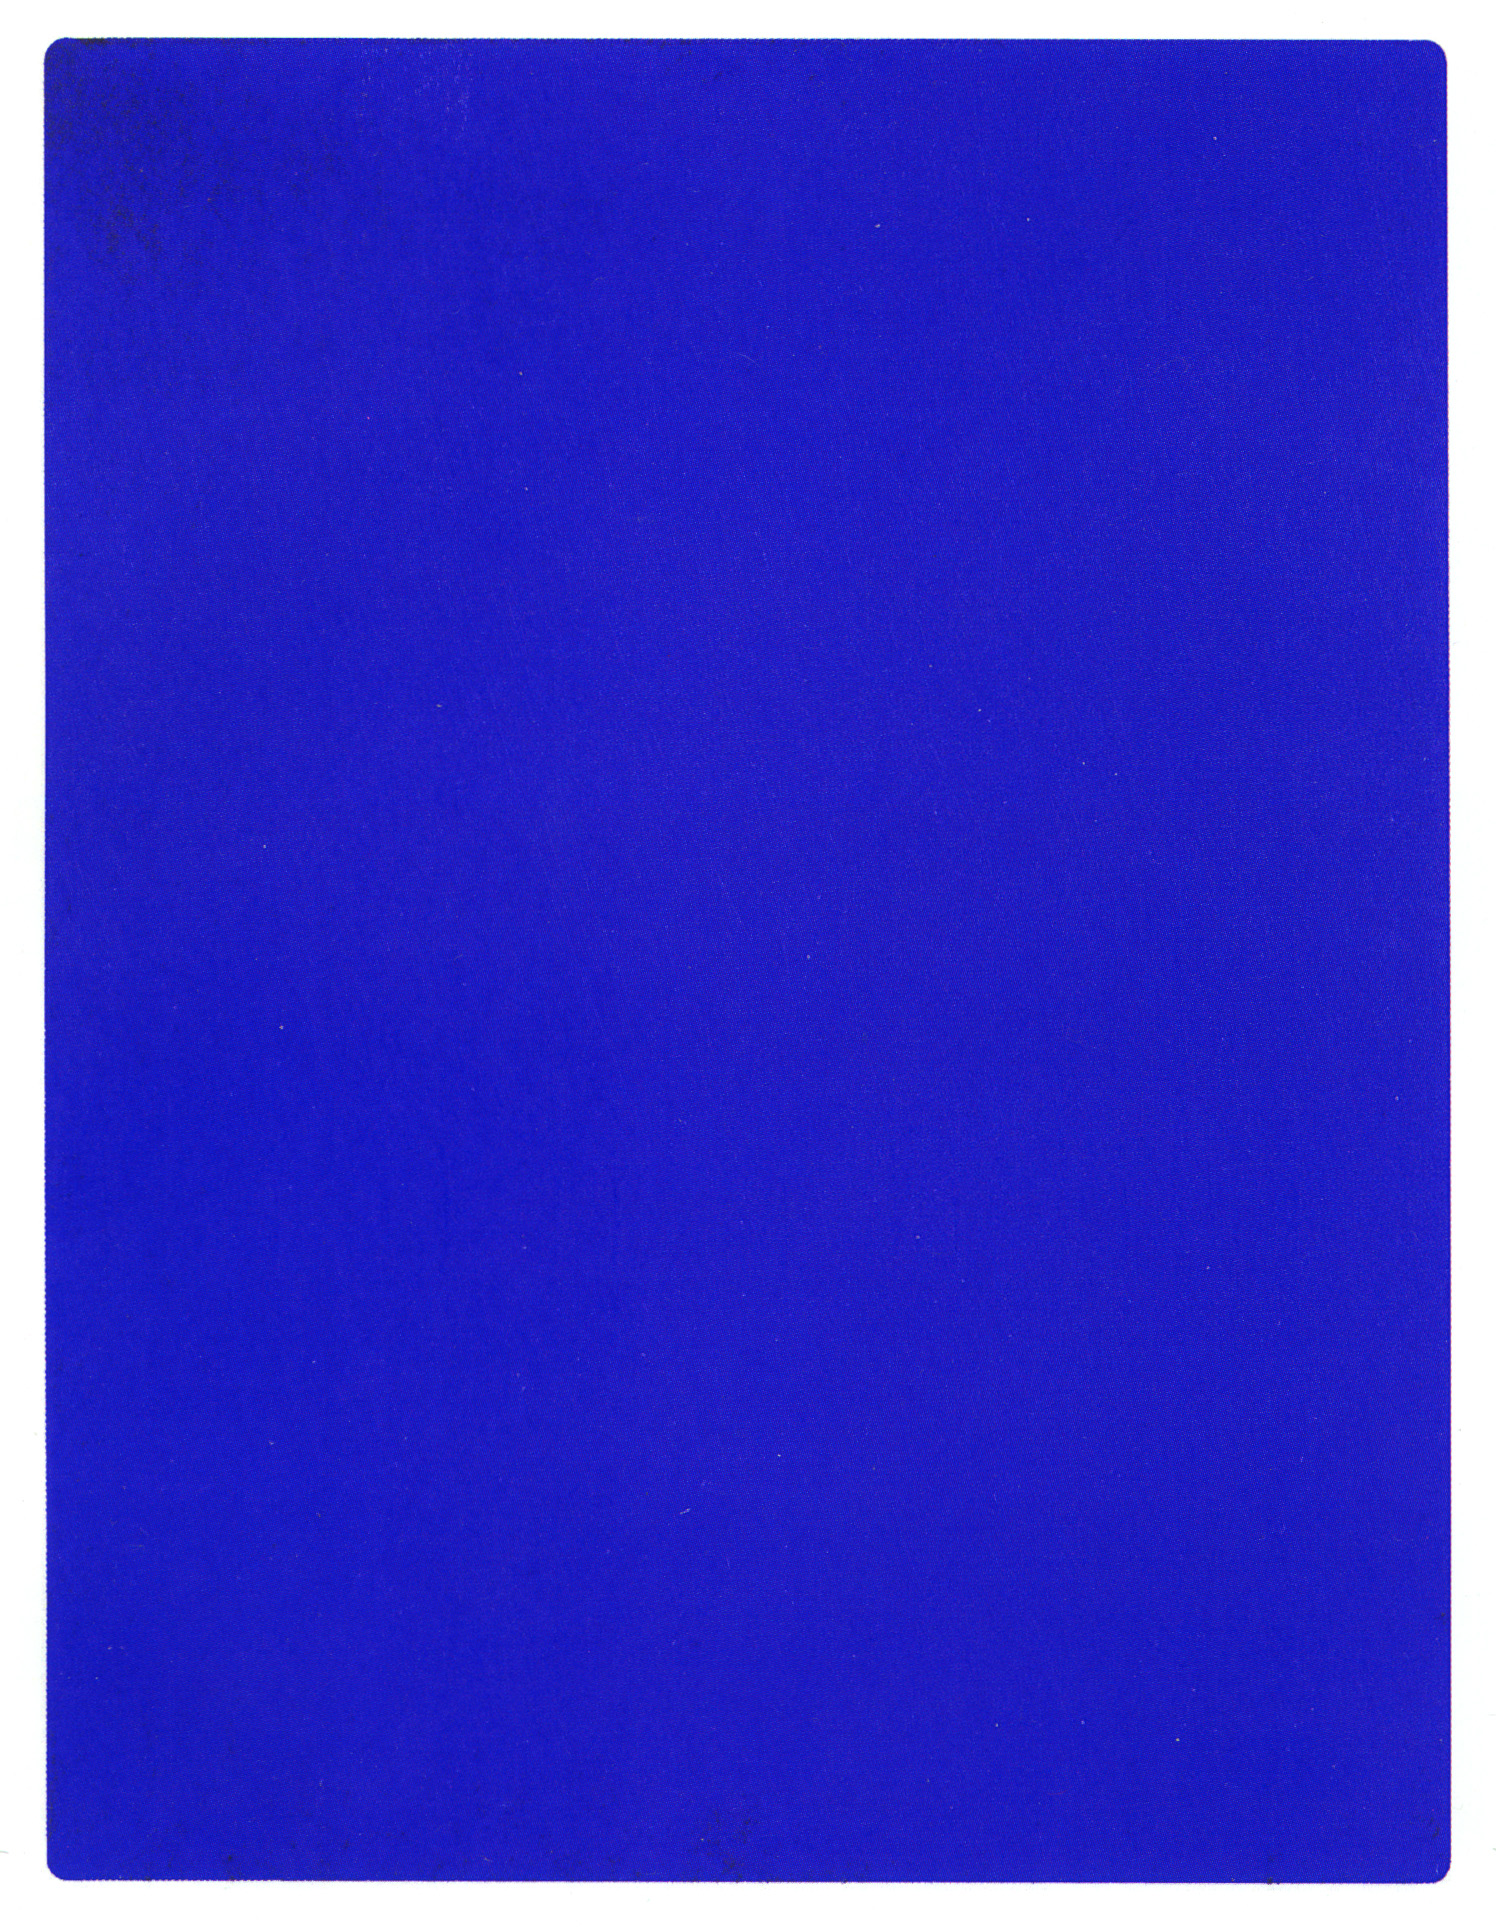 100 Fantastique Suggestions Le Bleu De Klein